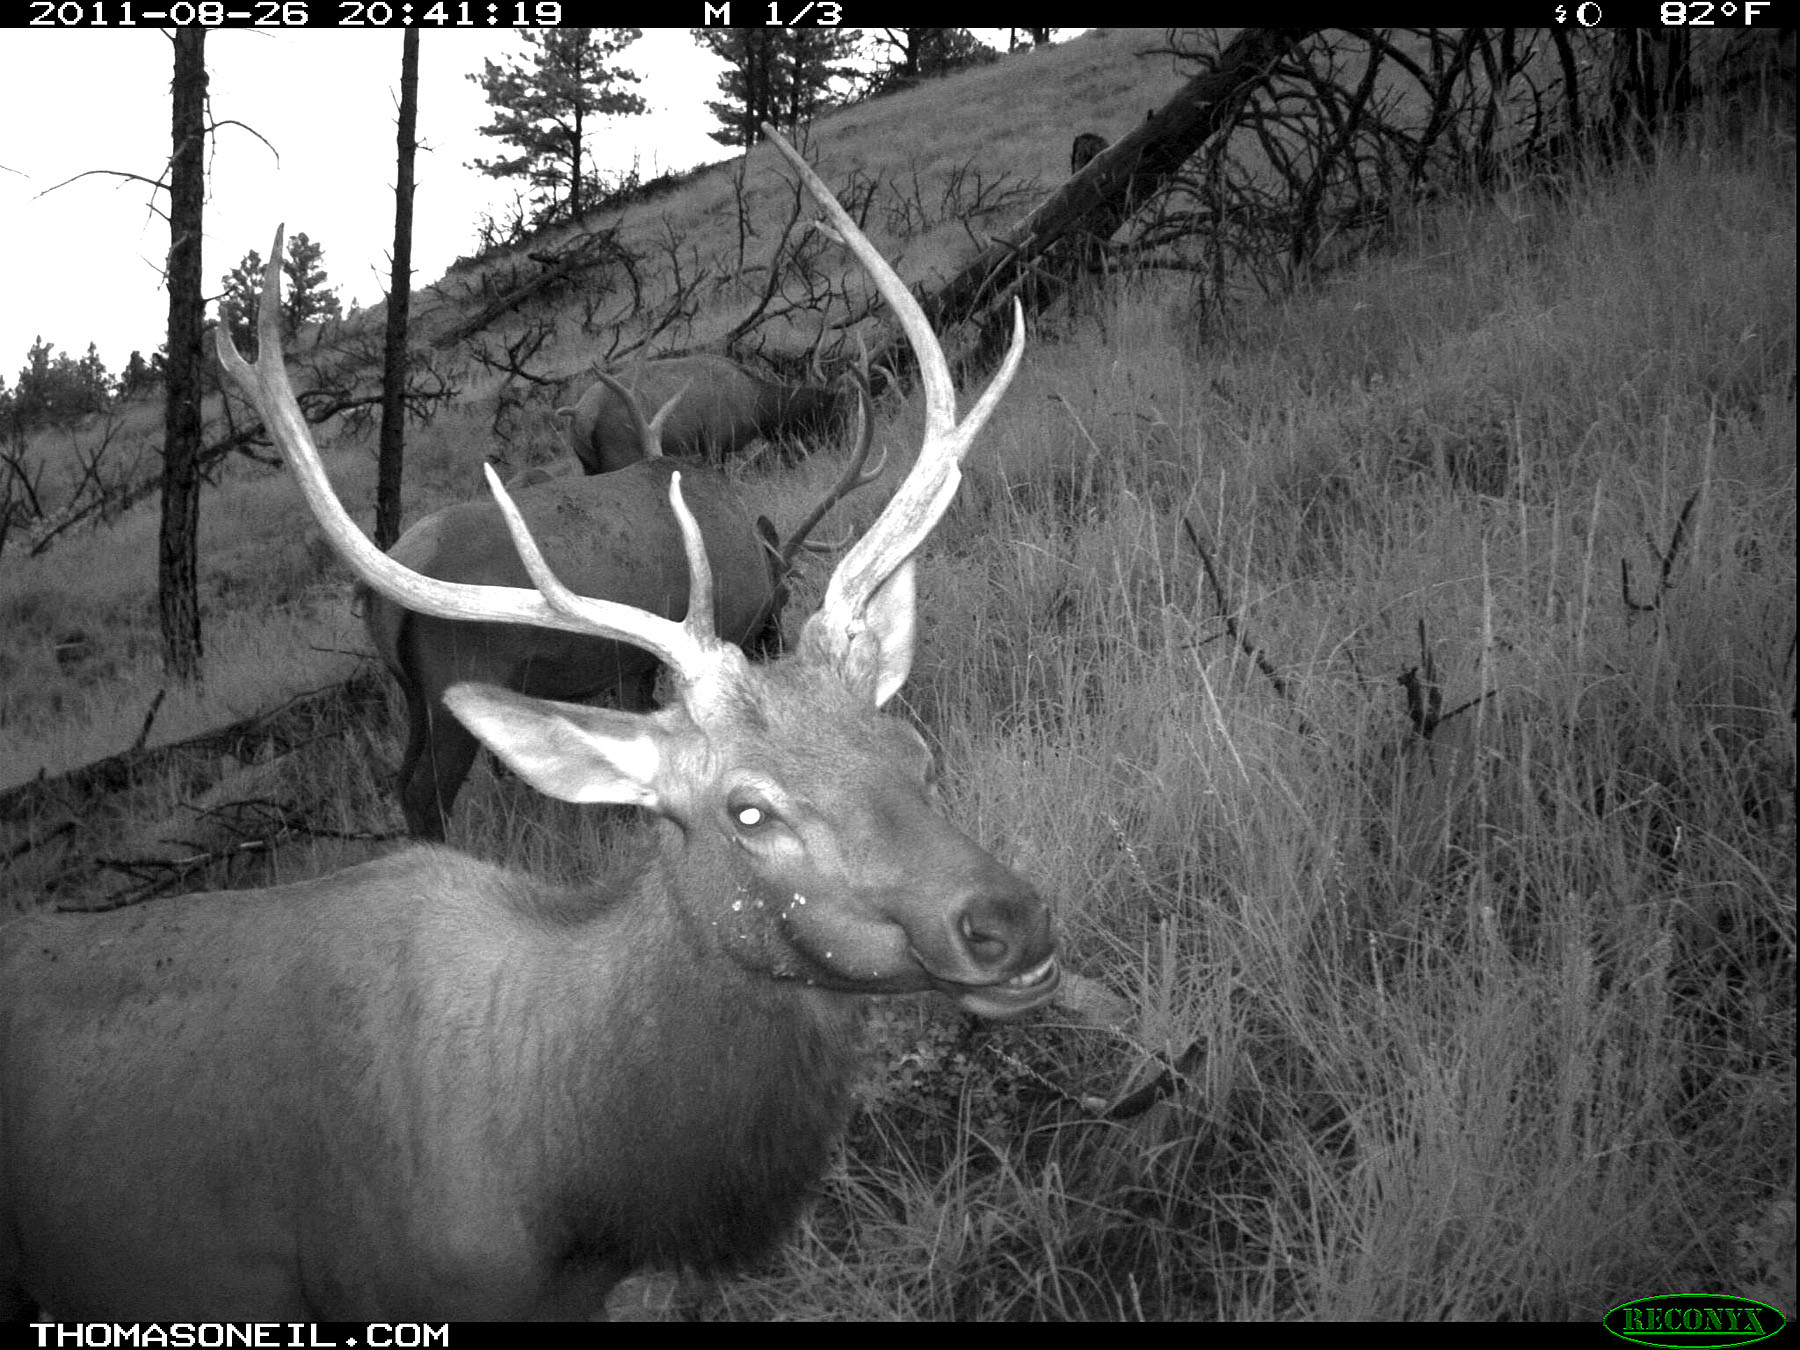 Elk on trail camera, Wind Cave National Park, South Dakota, August 2011.  Click for next photo.